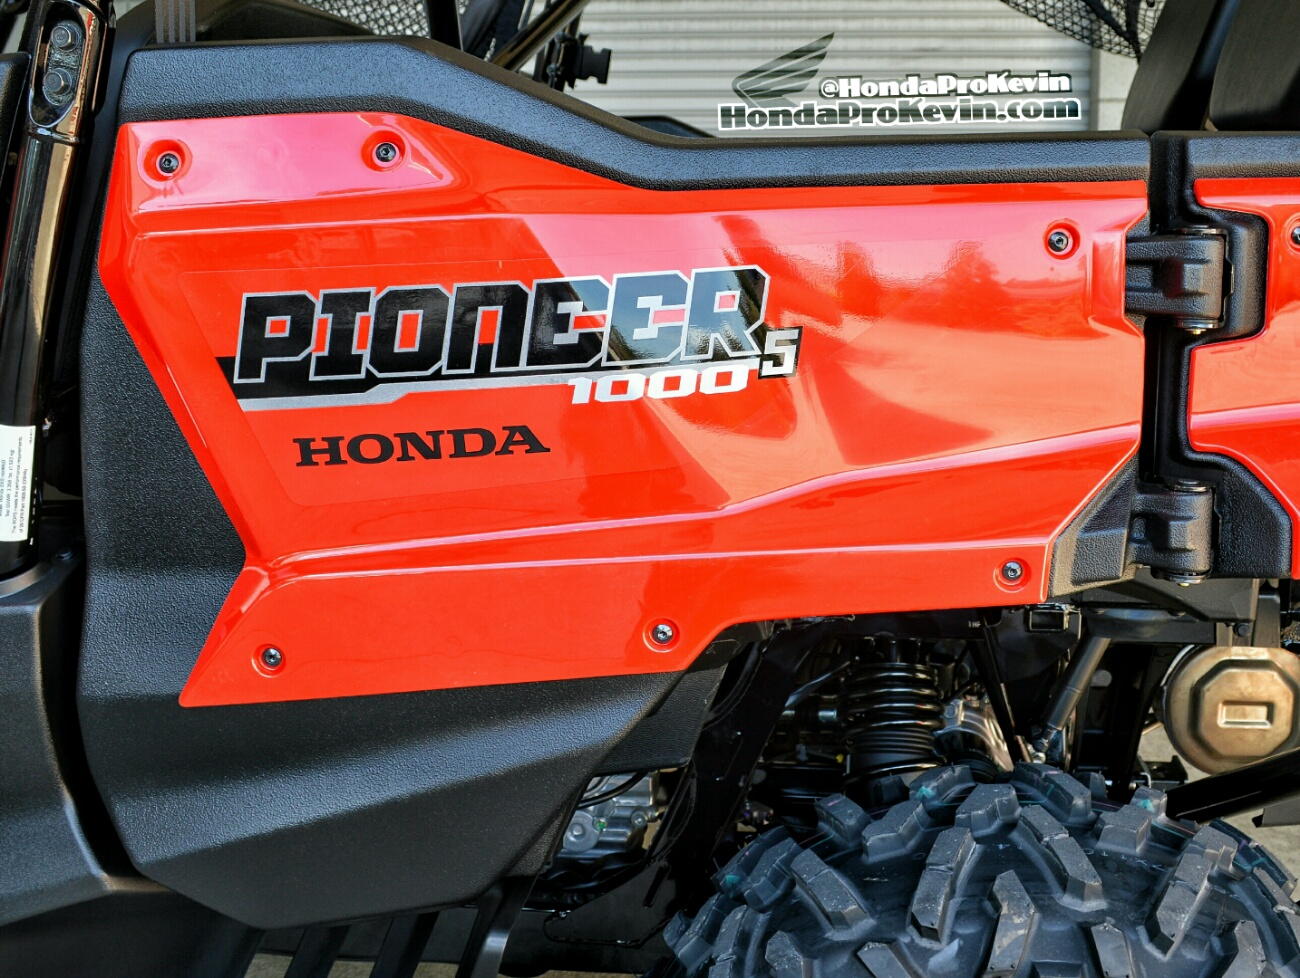 2018 Honda Pioneer 1000-5 Review / Specs - Side by Side ATV / UTV / SxS / Utility Vehicle 4x4 - SXS1000 - SXS10M5